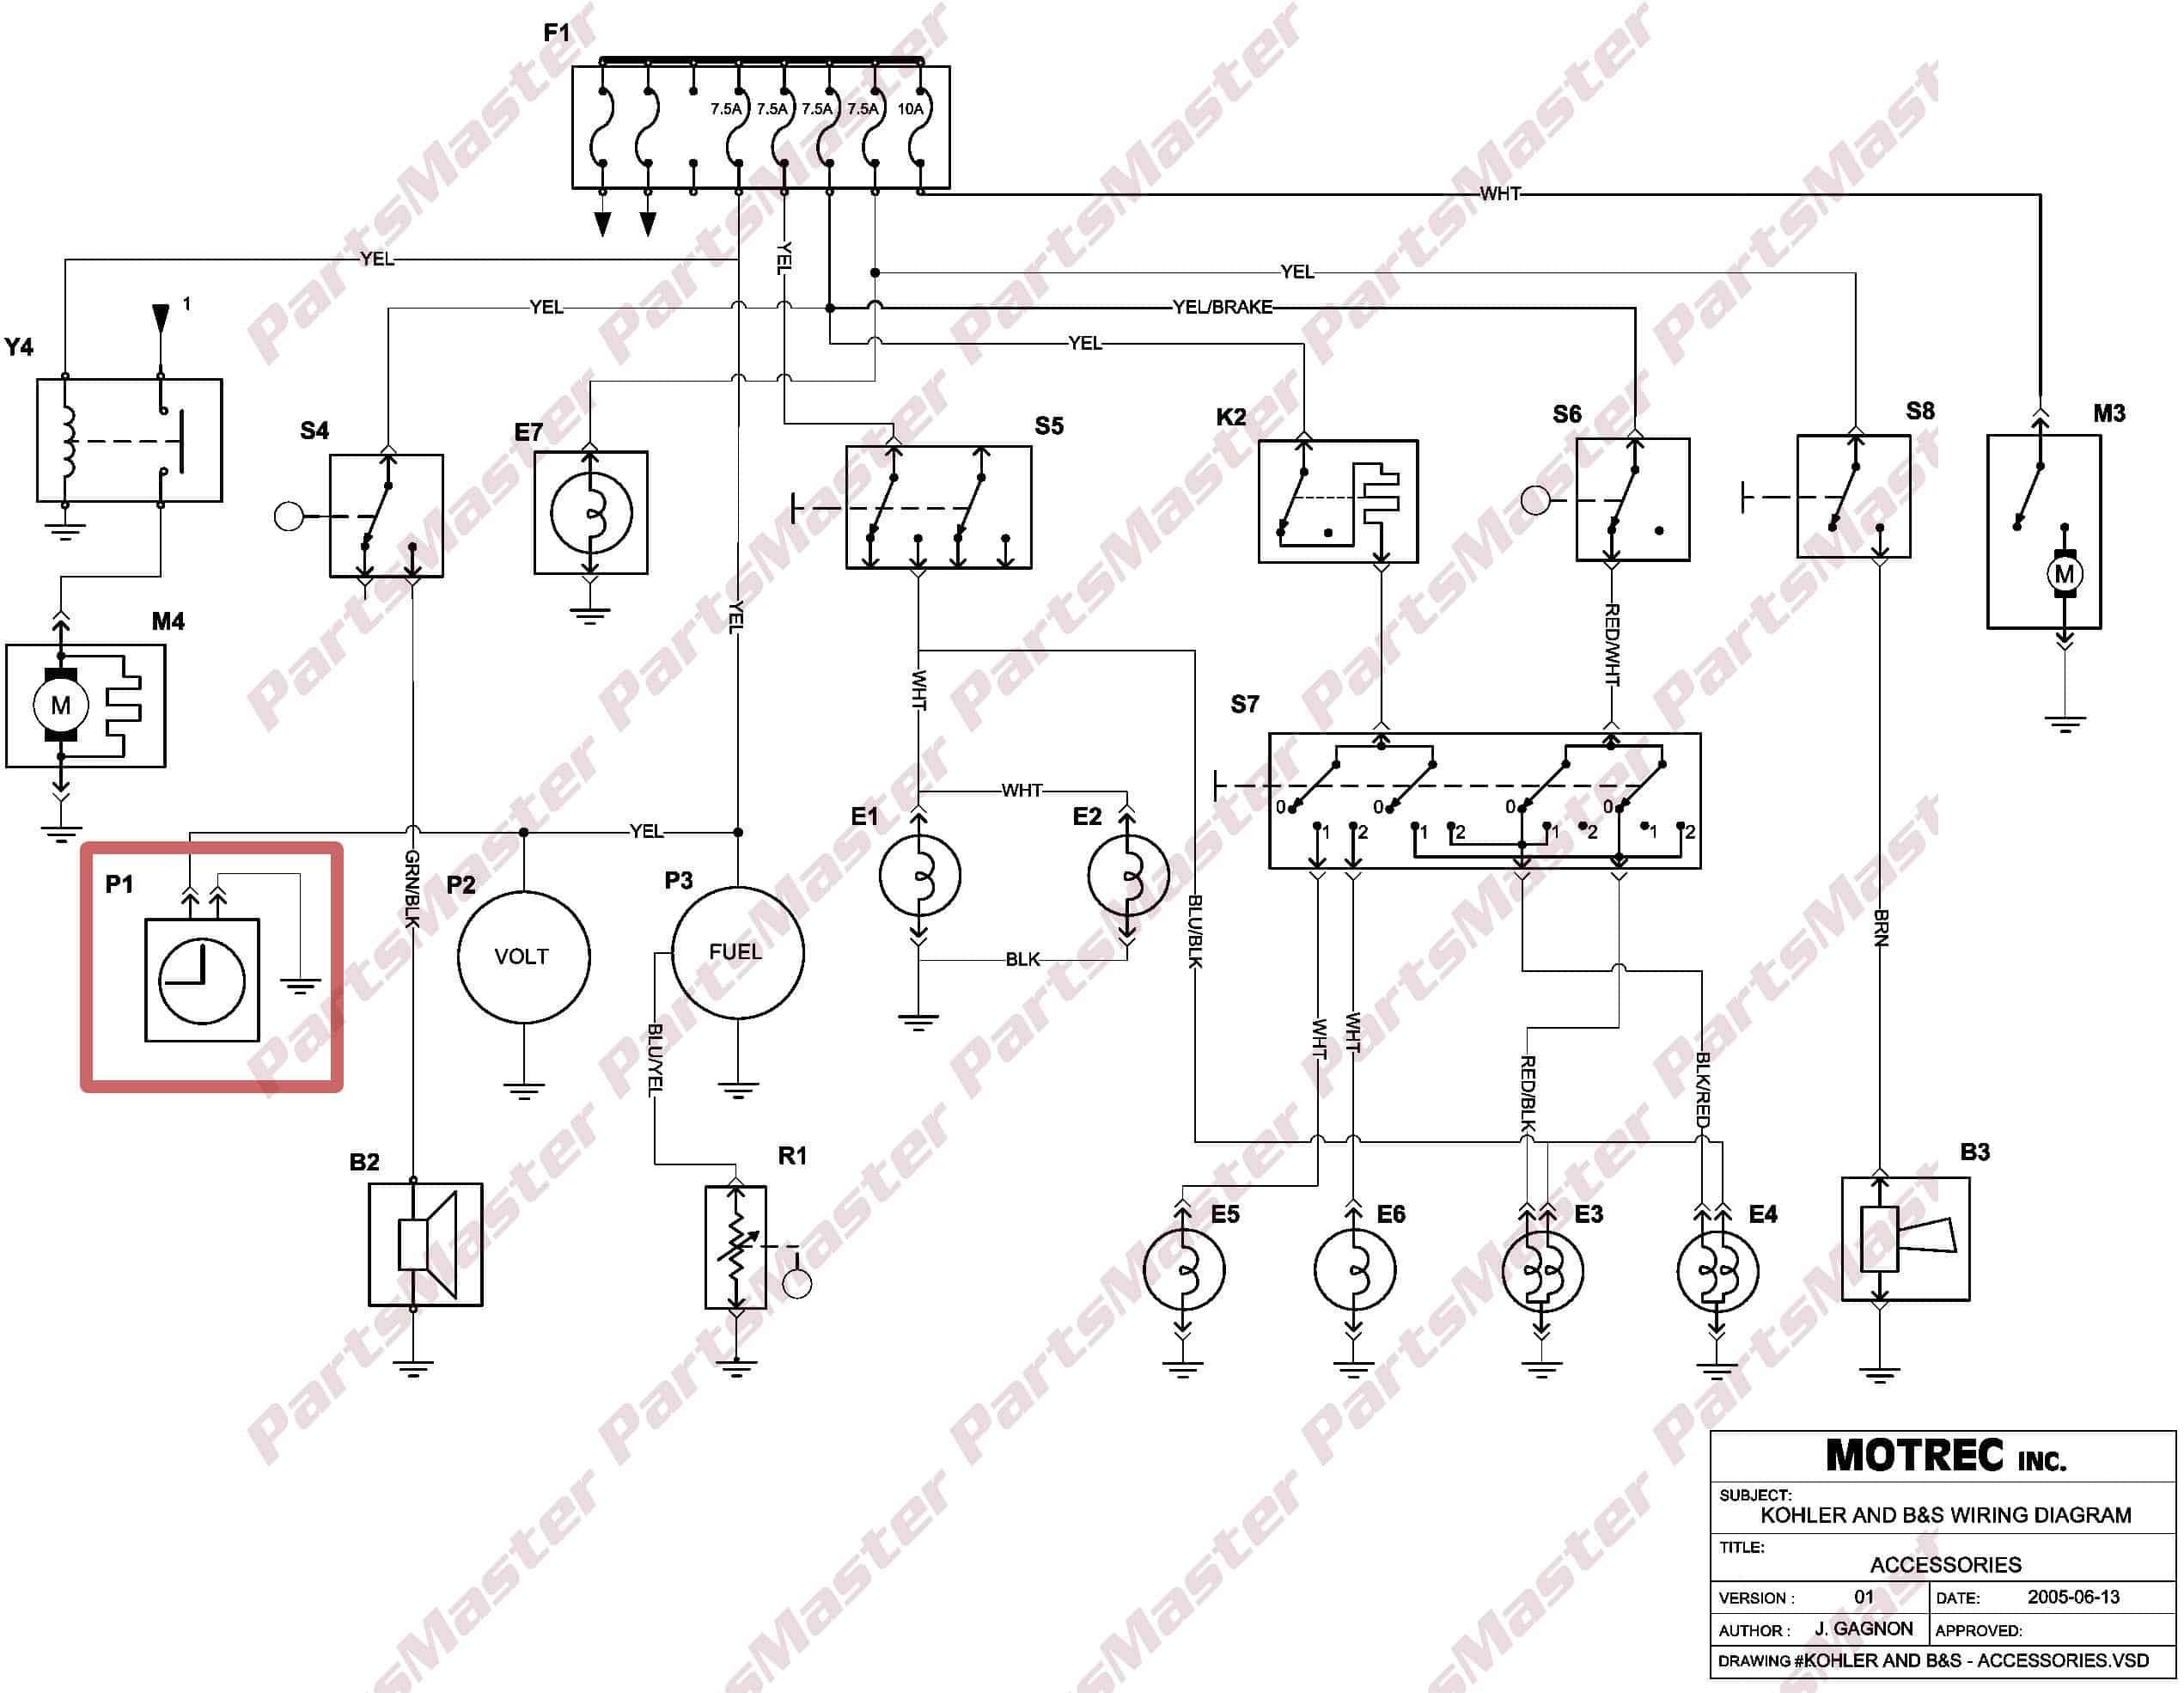 1998 bluebird bus wiring diagram levels data flow s14 cab experience of